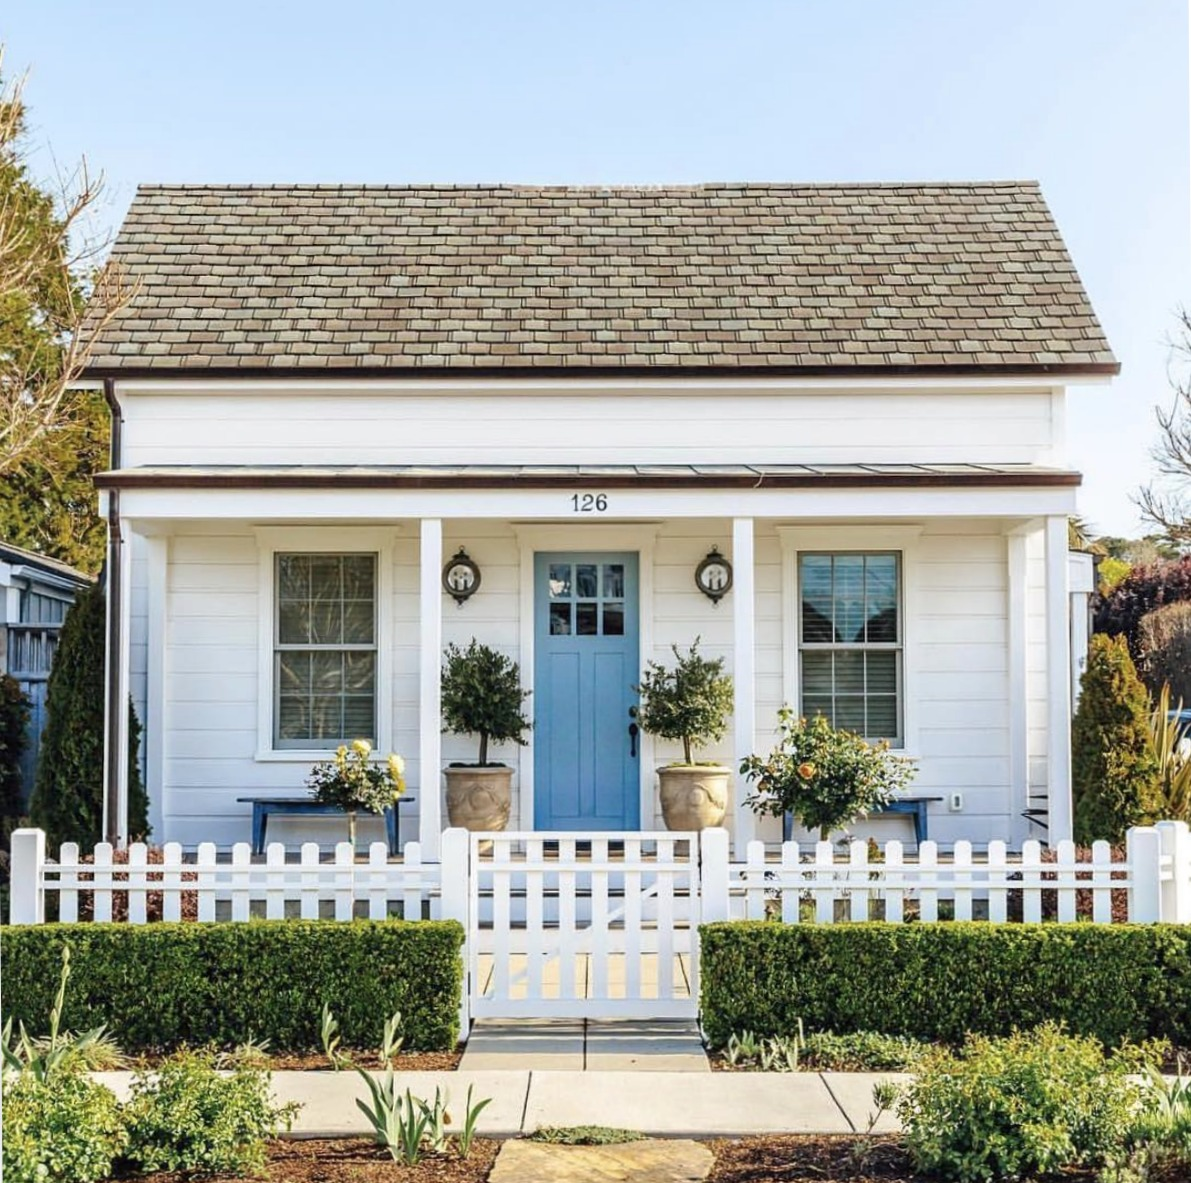 Exterior Inspiration- Home with No Shutters